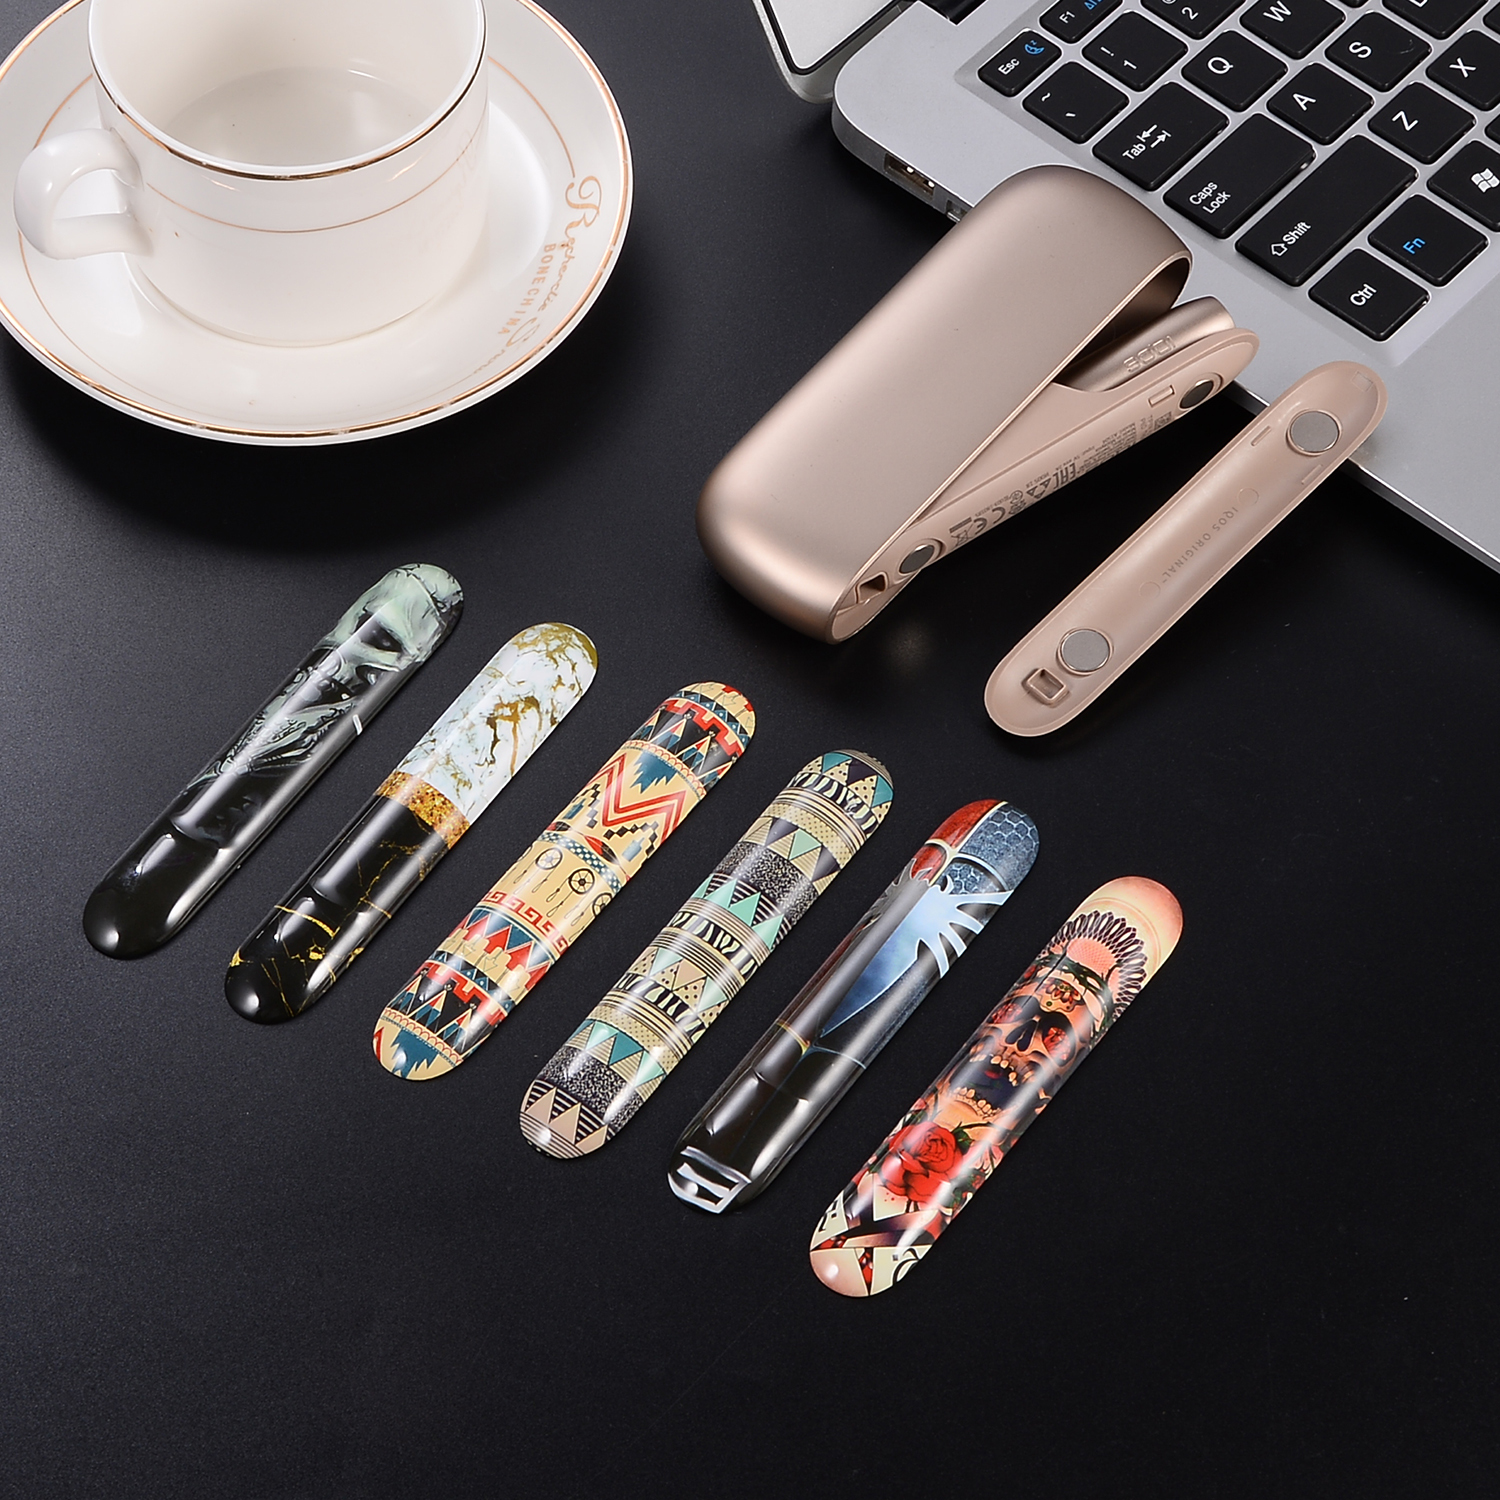 New Design Replaceable Magnetic Cap Camouflage Stone For Iqos 3 Case And Fashion Design Of Iqos 3 In 2019  Icos аксессуары